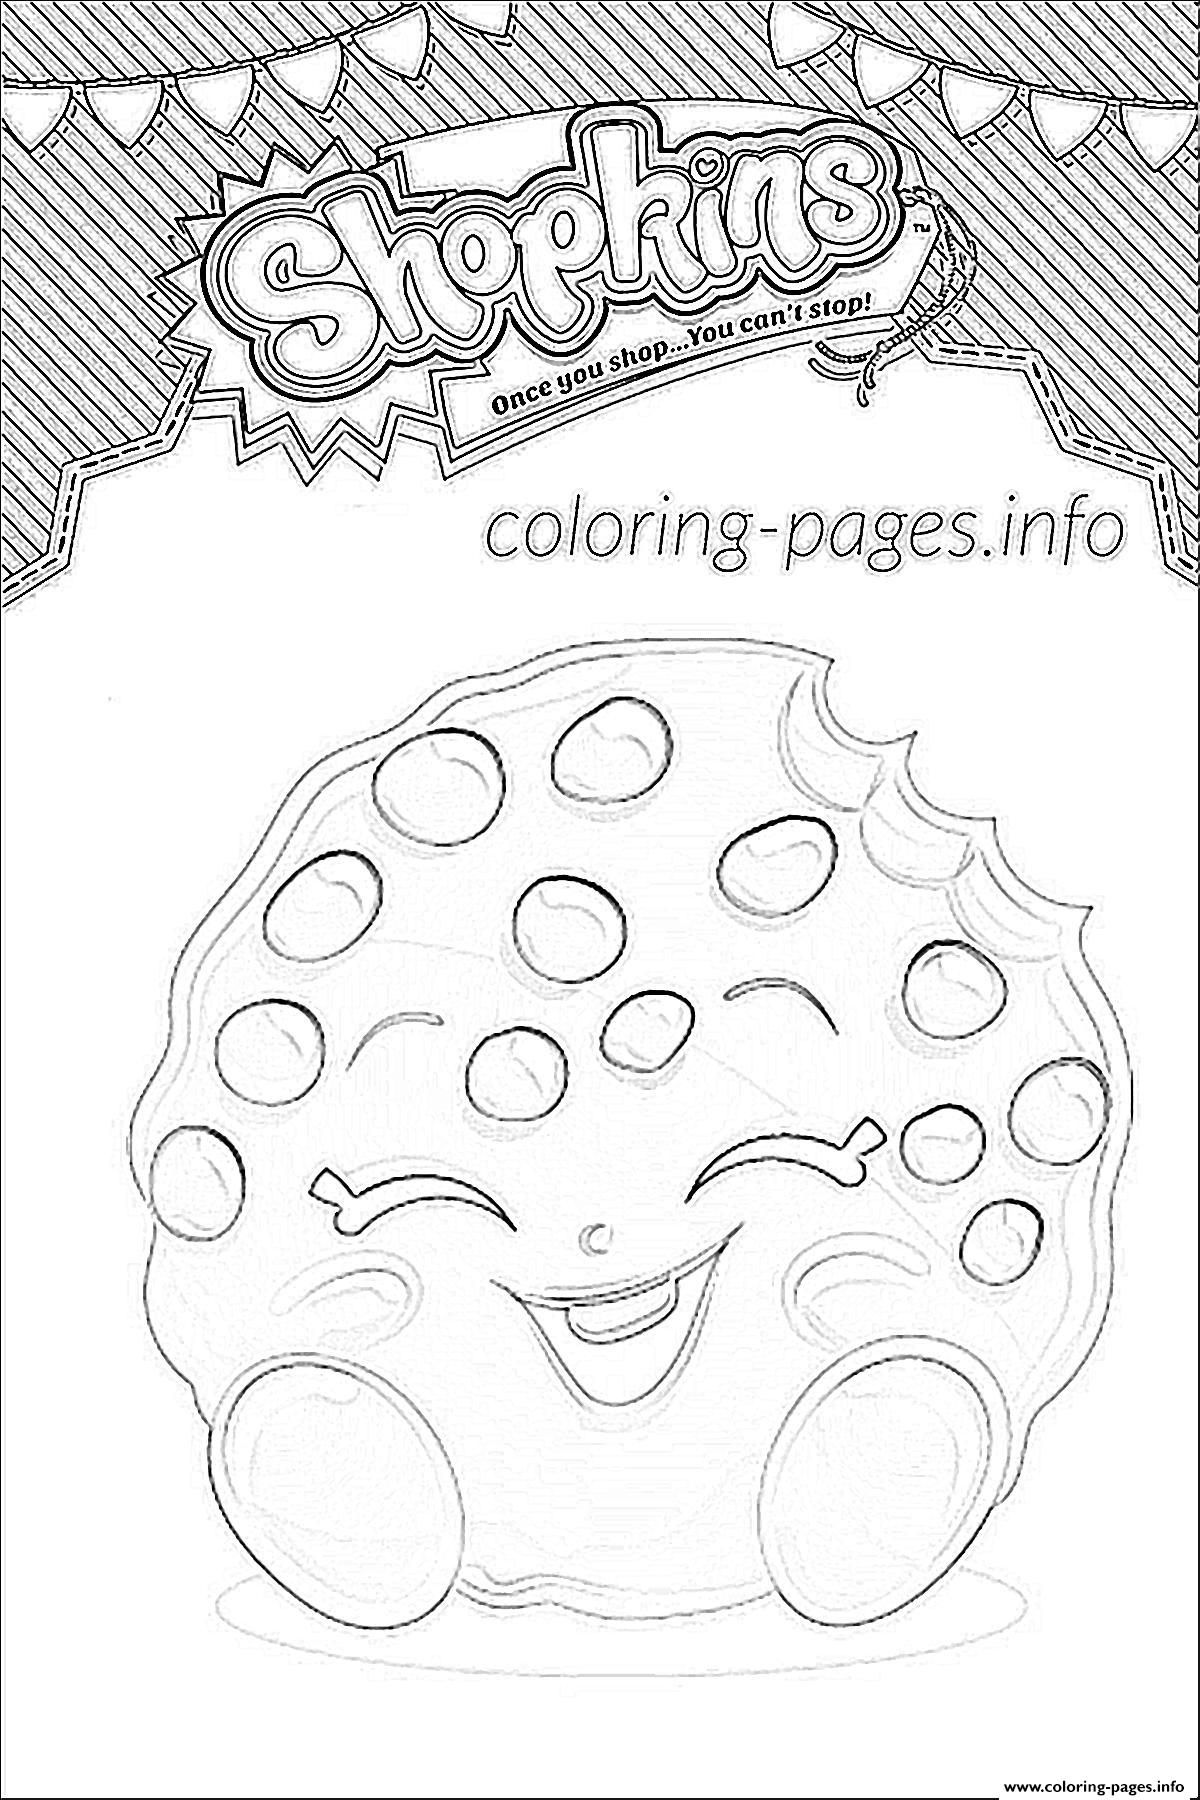 Print Shopkins Kooky Cookie Shoppies Coloring Pages Diy And Crafts